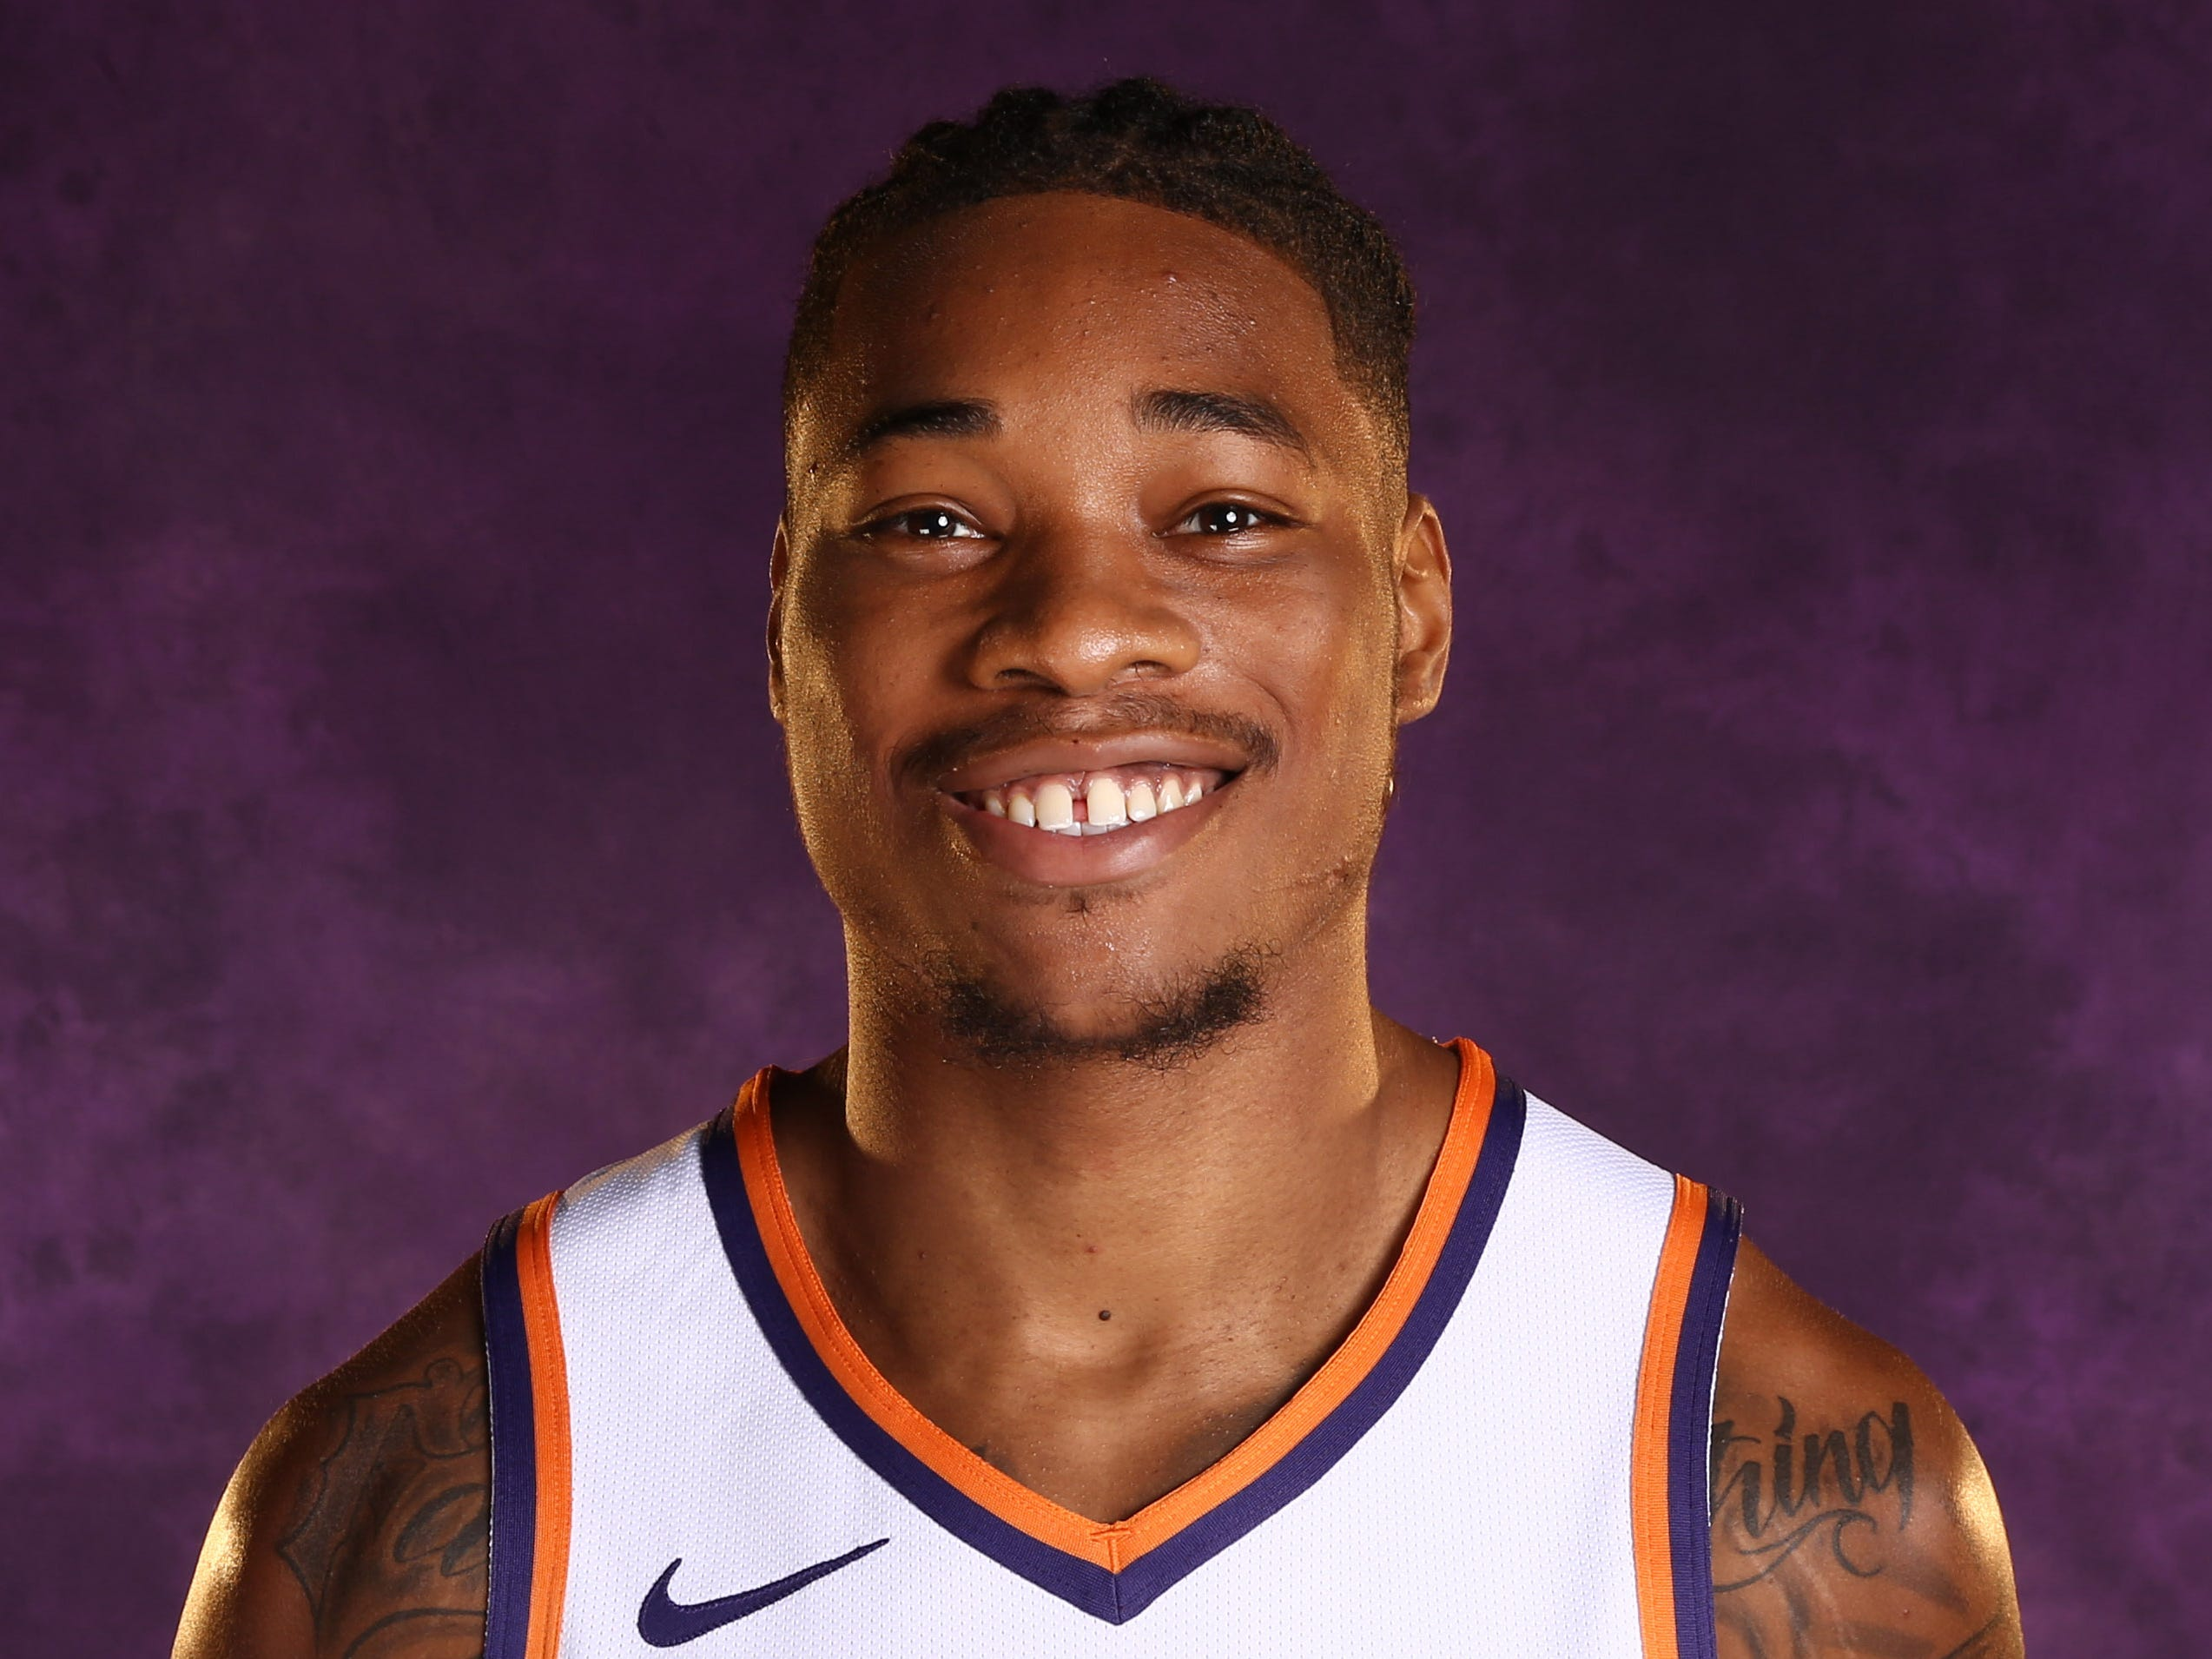 Phoenix Suns forward Richaun Holmes during media day at Talking Stick Resort Arena on Sep. 24, 2018, in Phoenix, Ariz.